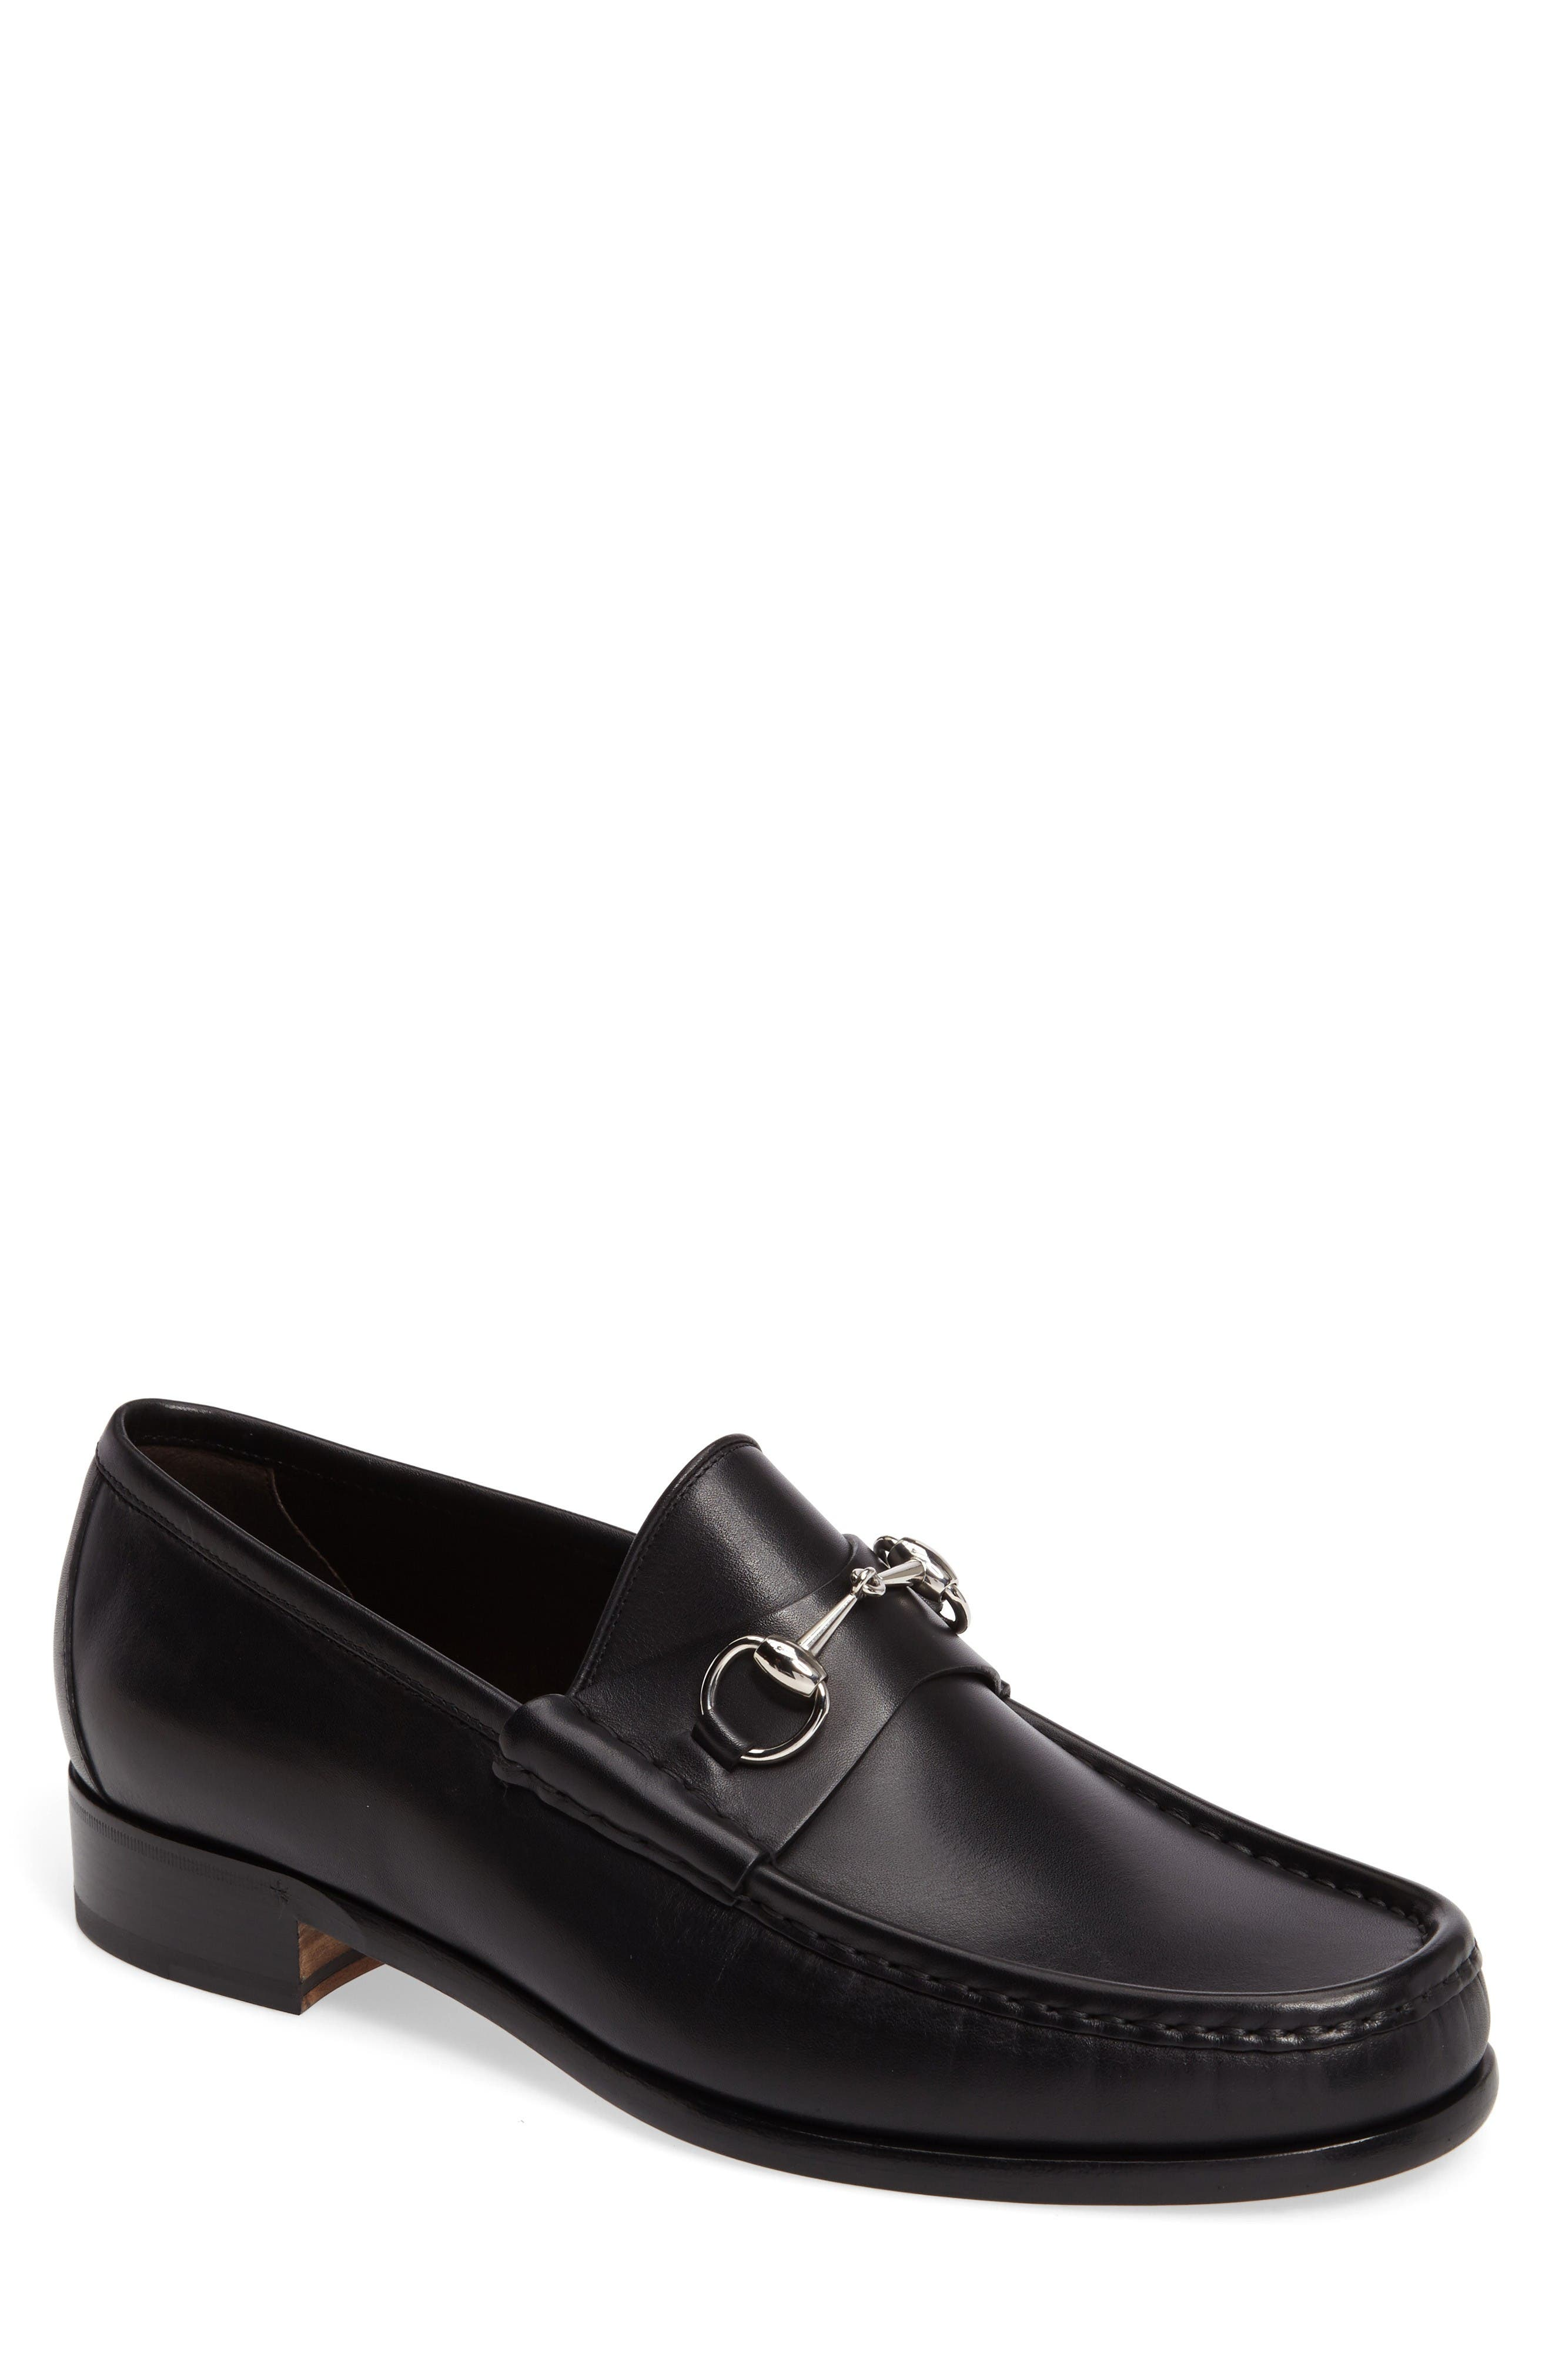 Gucci Classic Leather Moccasin